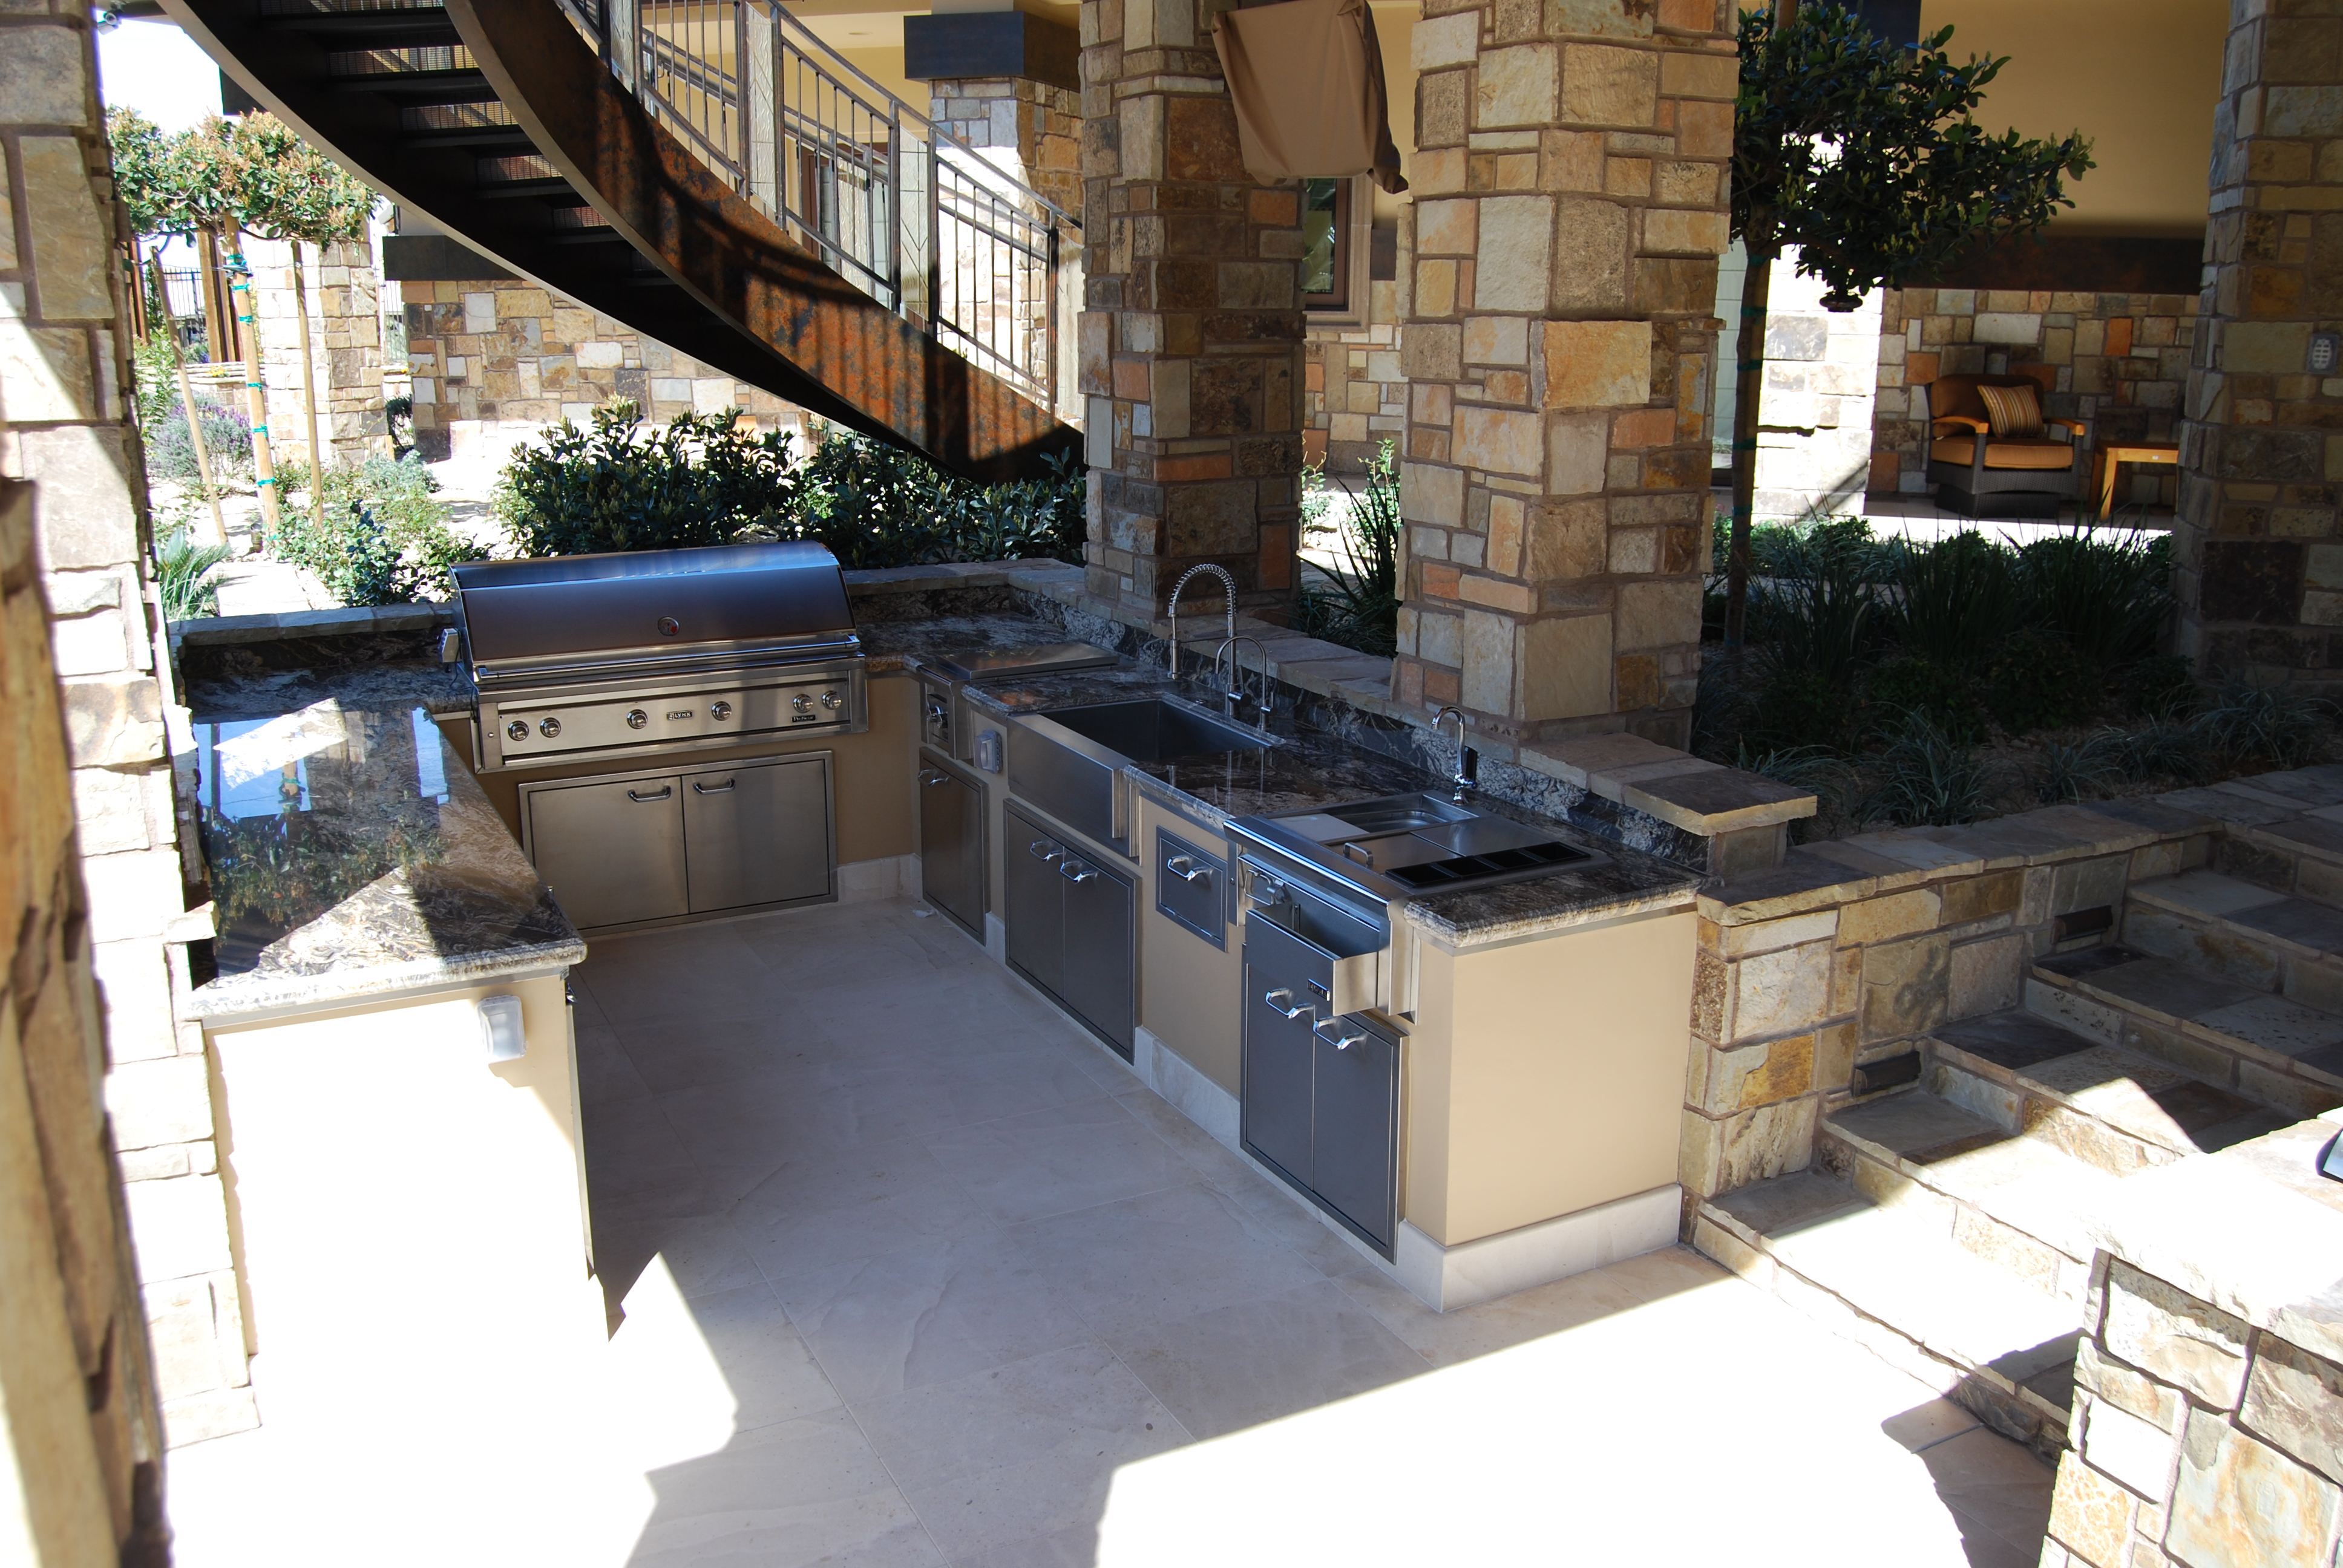 To Sort 612 Las Vegas Outdoor Kitchens And Barbecues